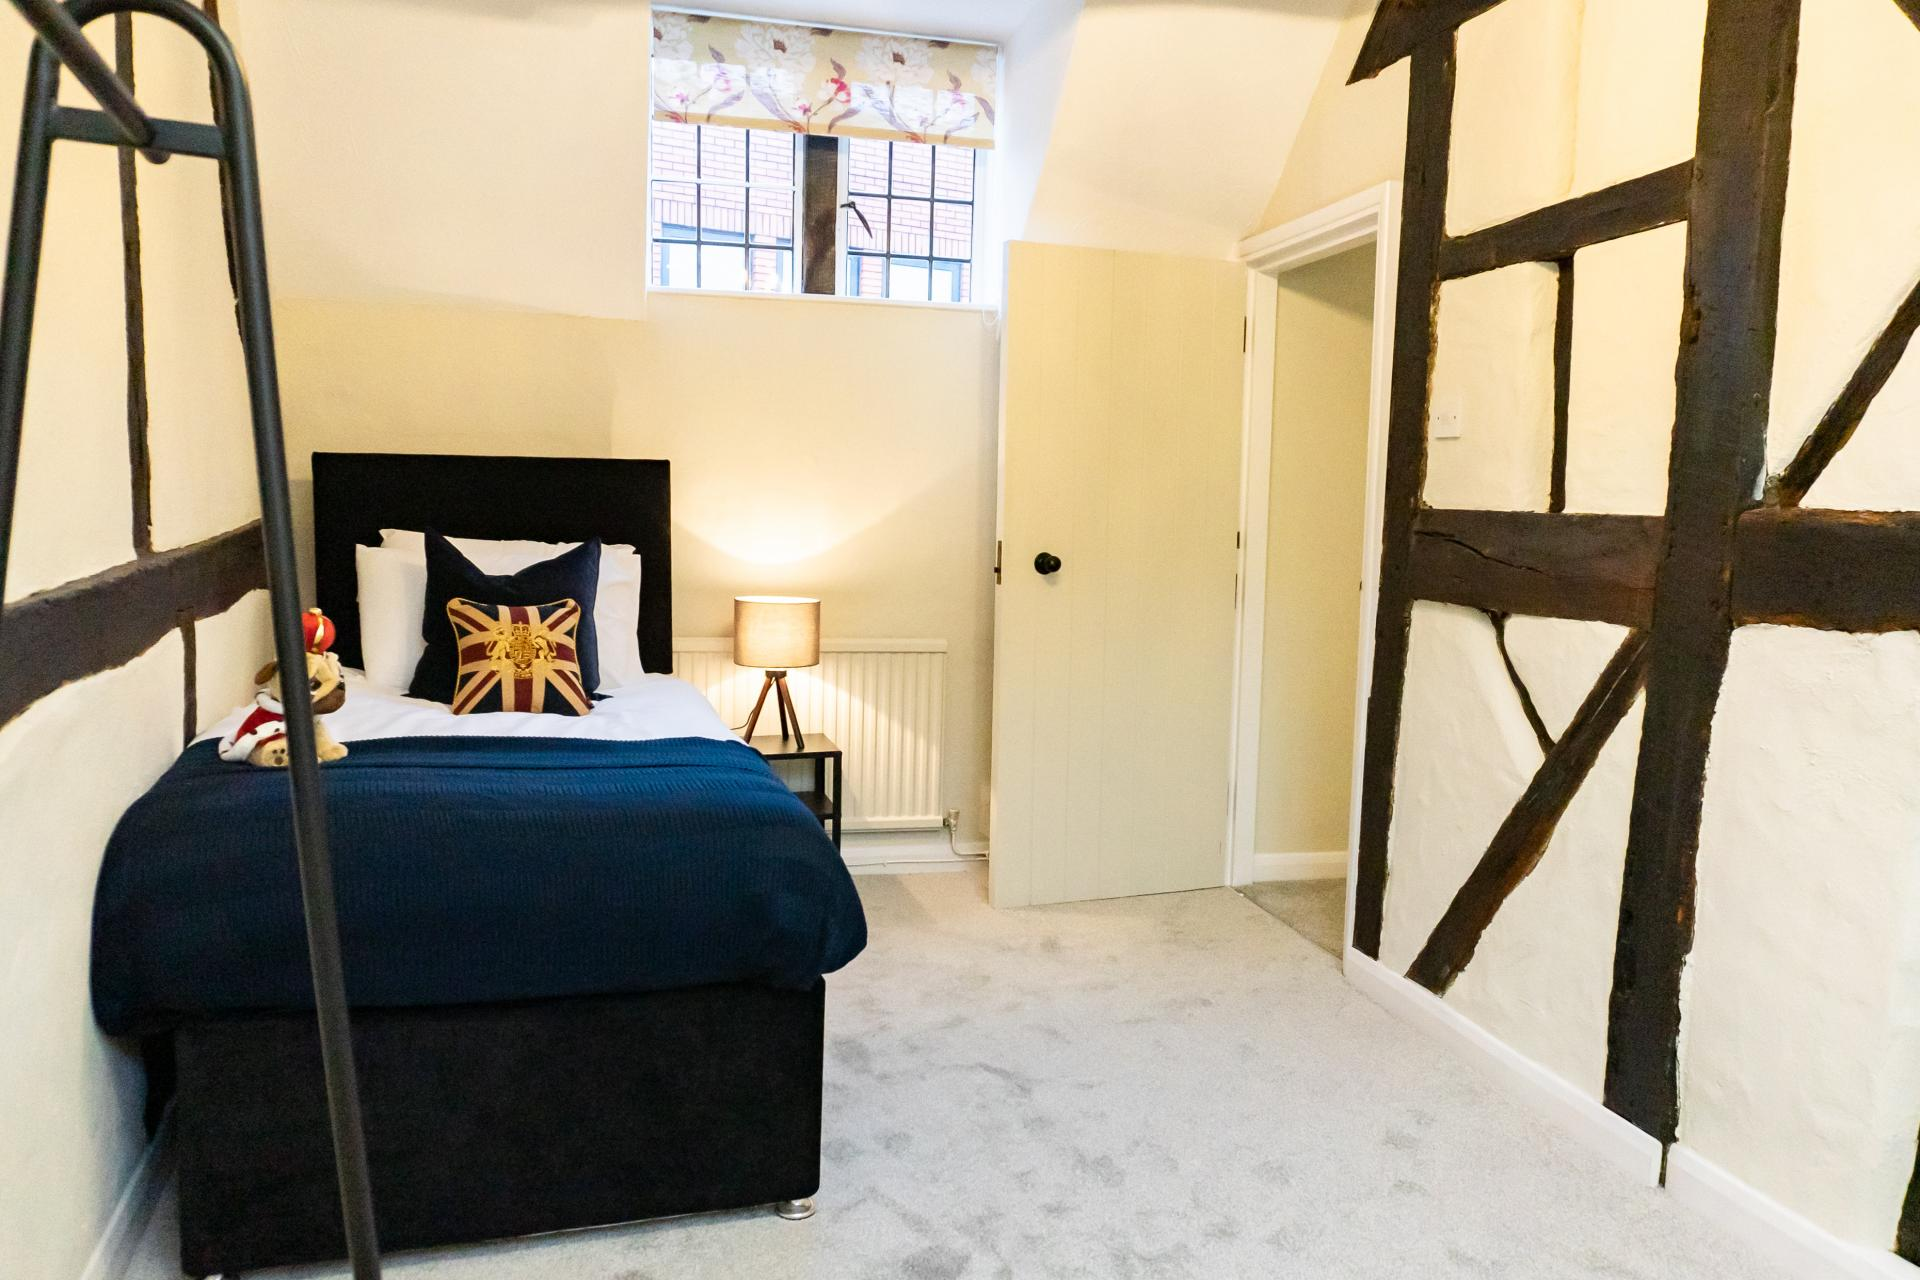 Bed at Queen Anne's Court Apartment, Centre, Windsor - Citybase Apartments